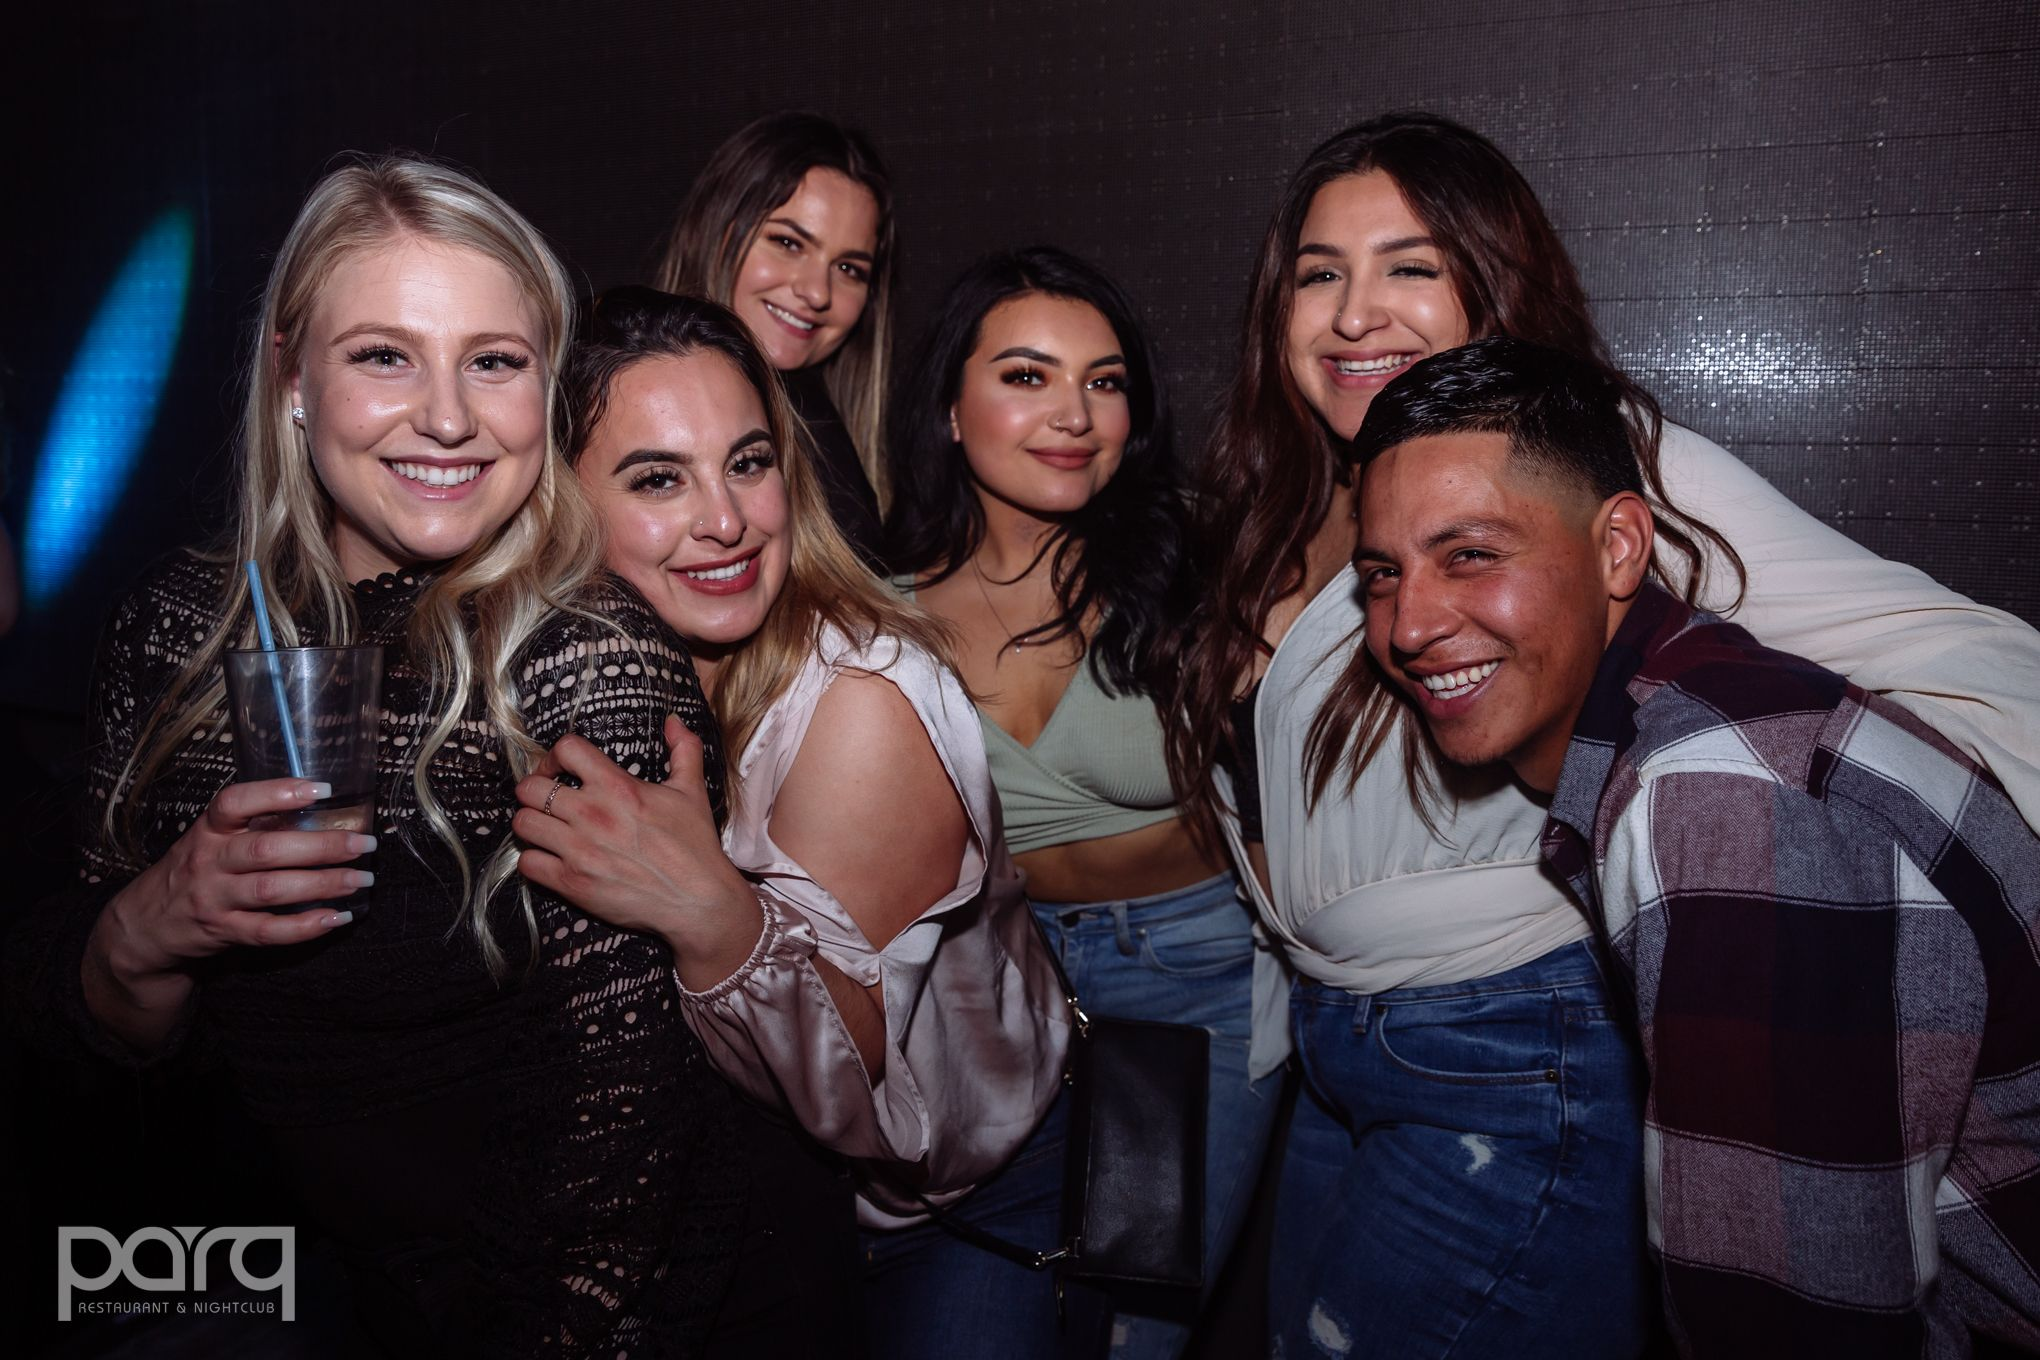 06.07.19 Parq - DJ Hollywood-18.jpg